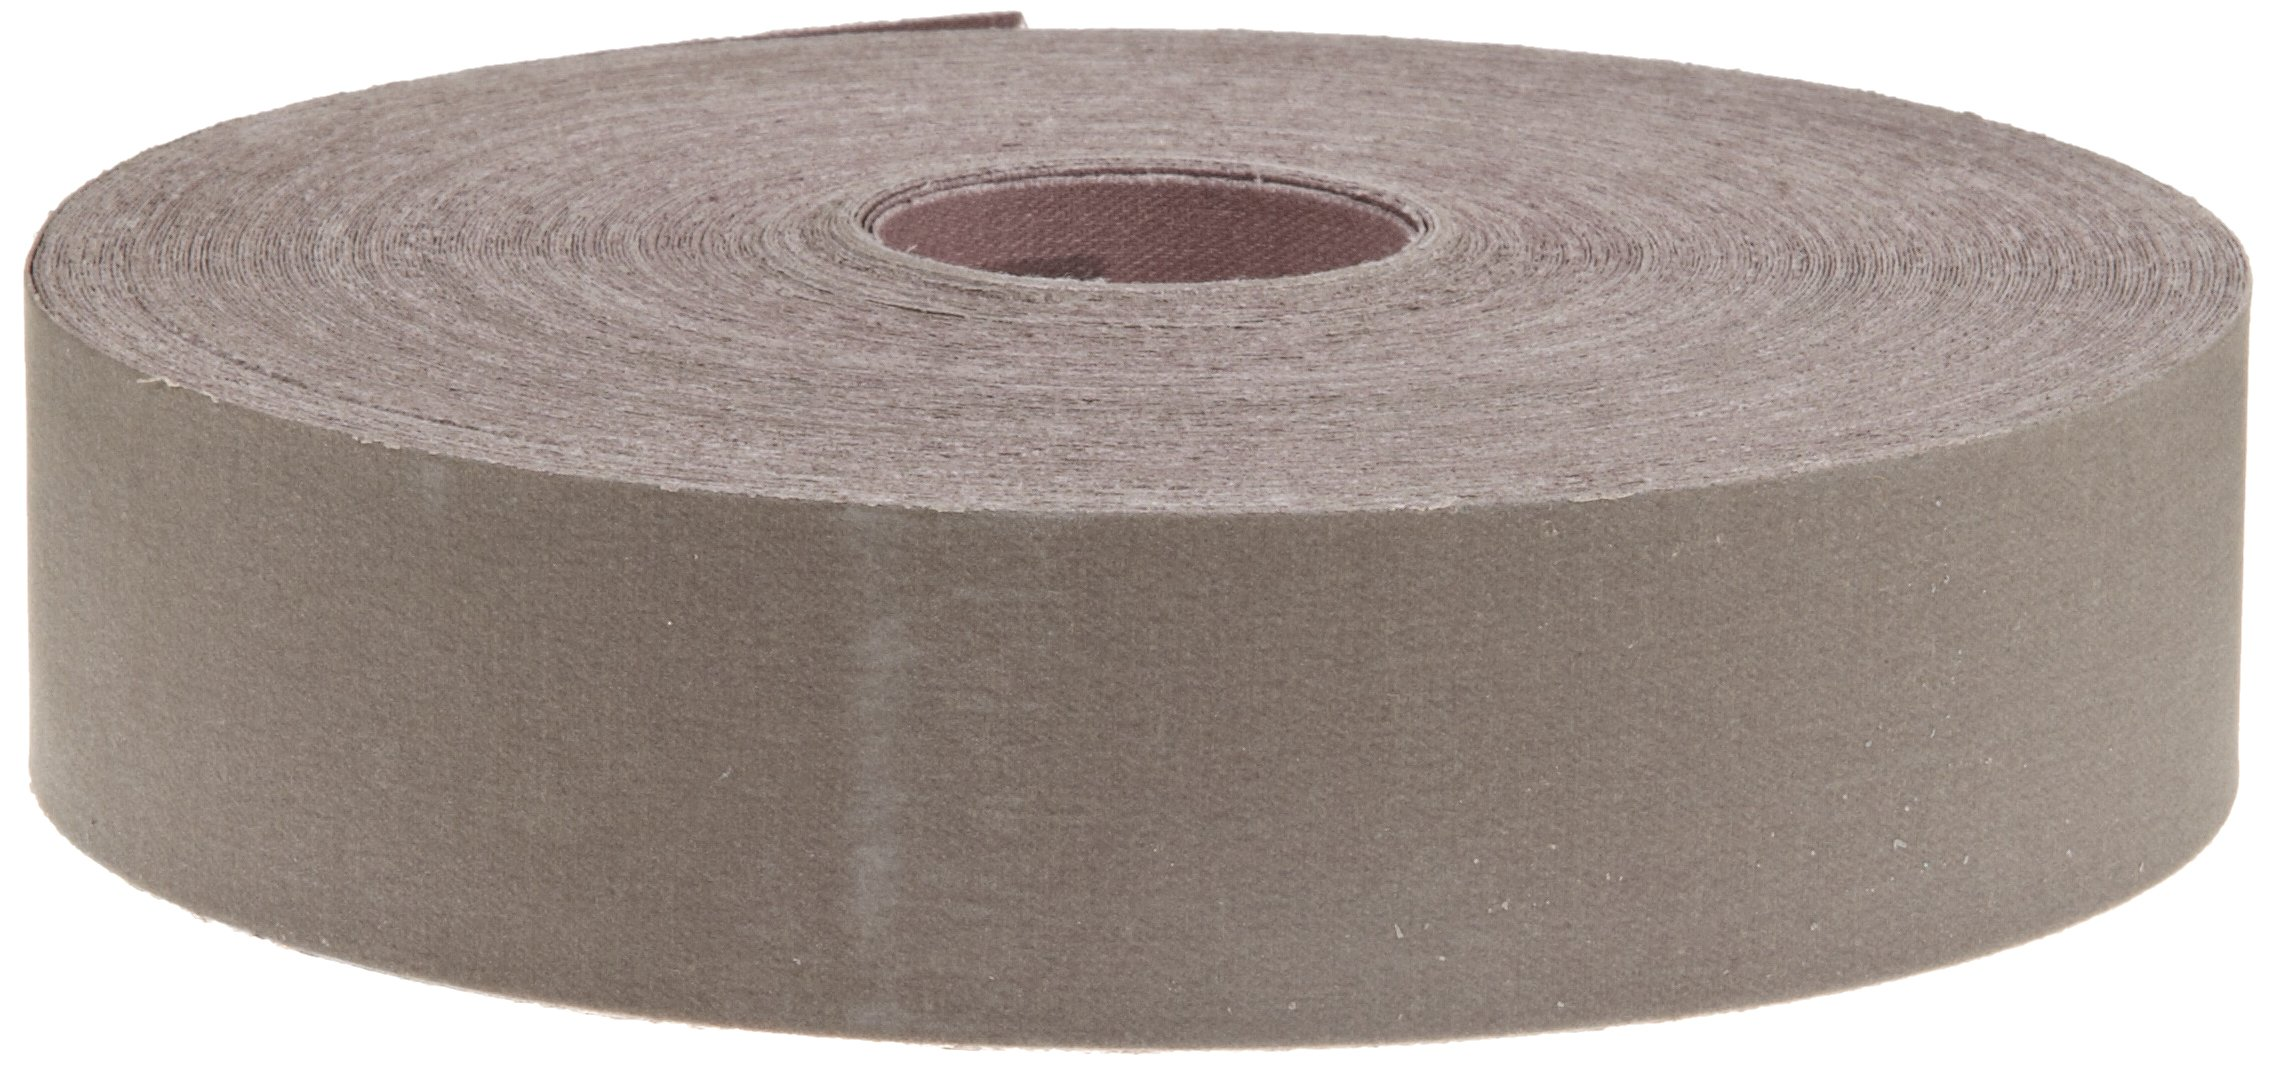 3M Utility Cloth Roll 211K, Aluminum Oxide, 1-1/2'' Width x 50yd Length, 400 Grit (Pack of 1) by Cubitron